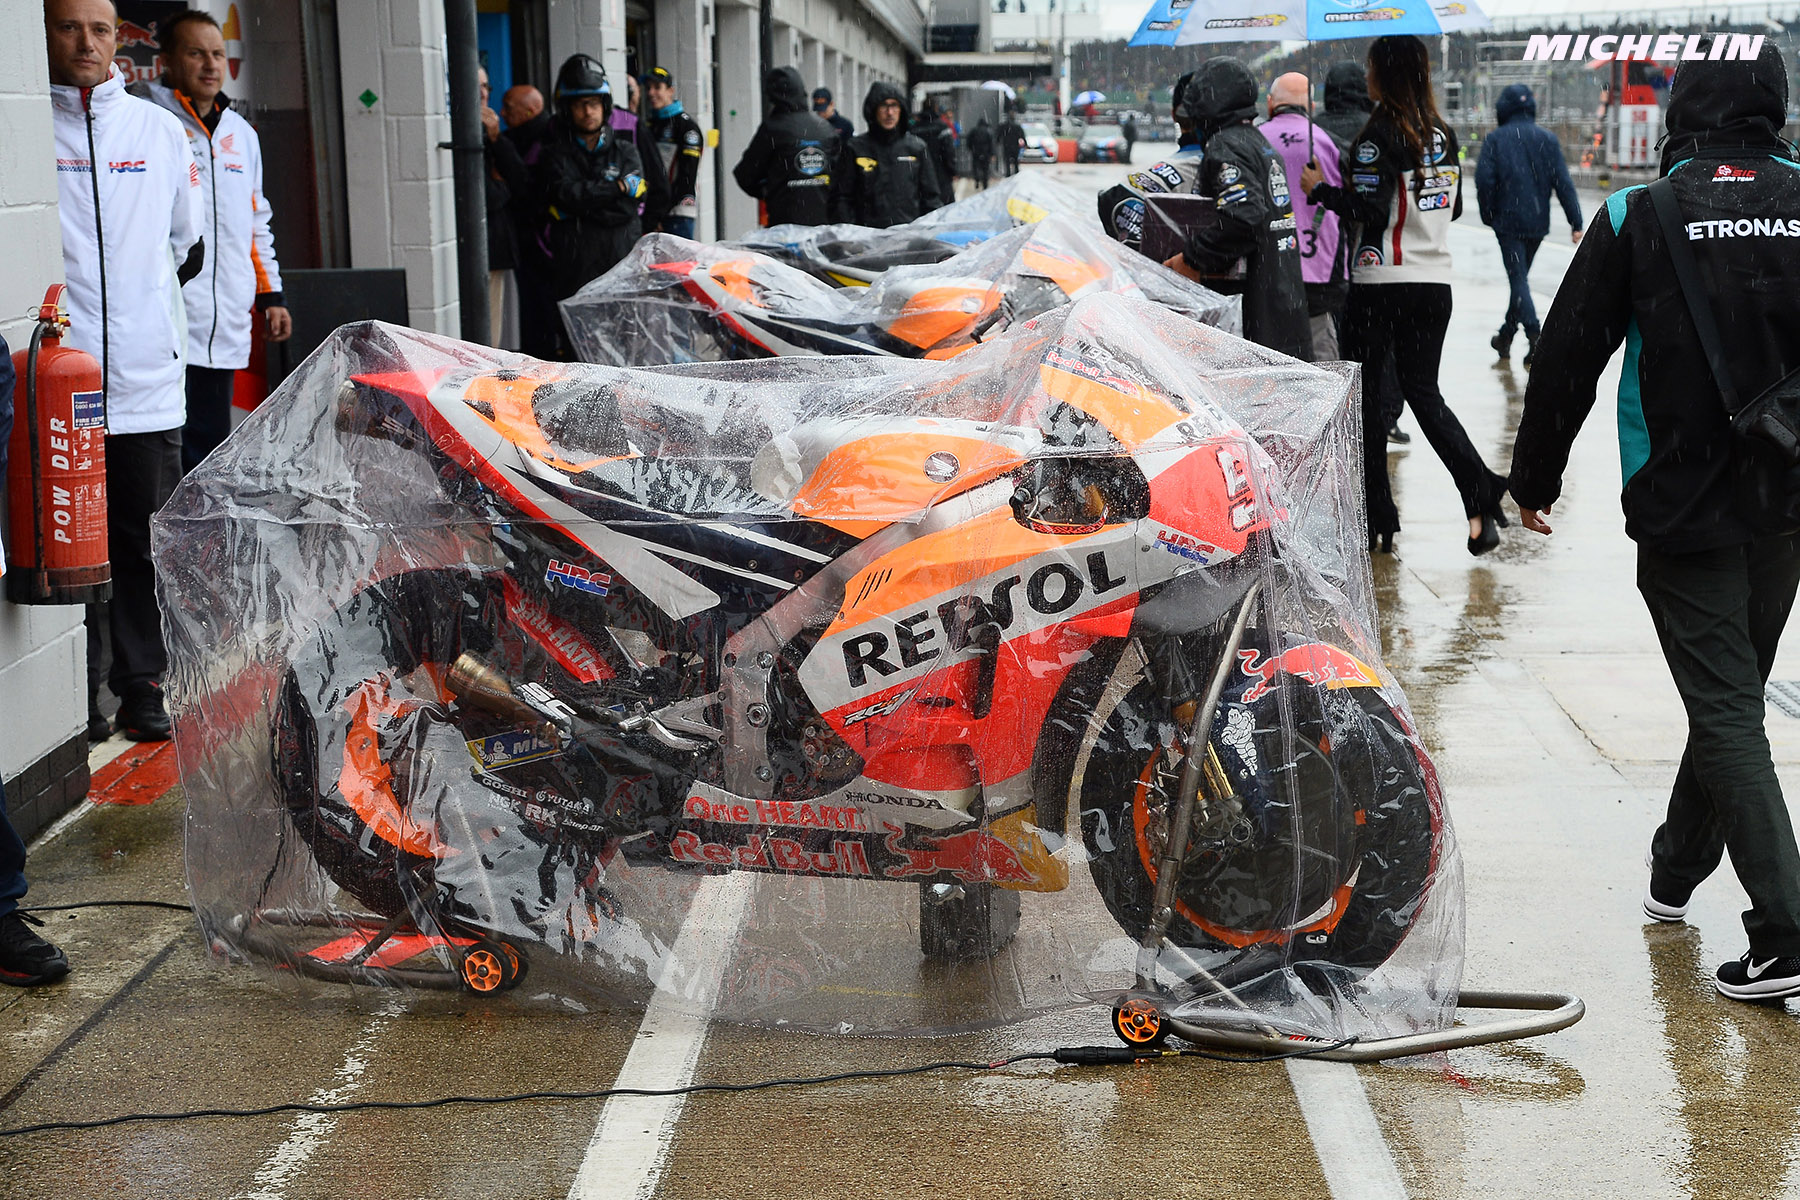 MotoGP: Britain's round washed out